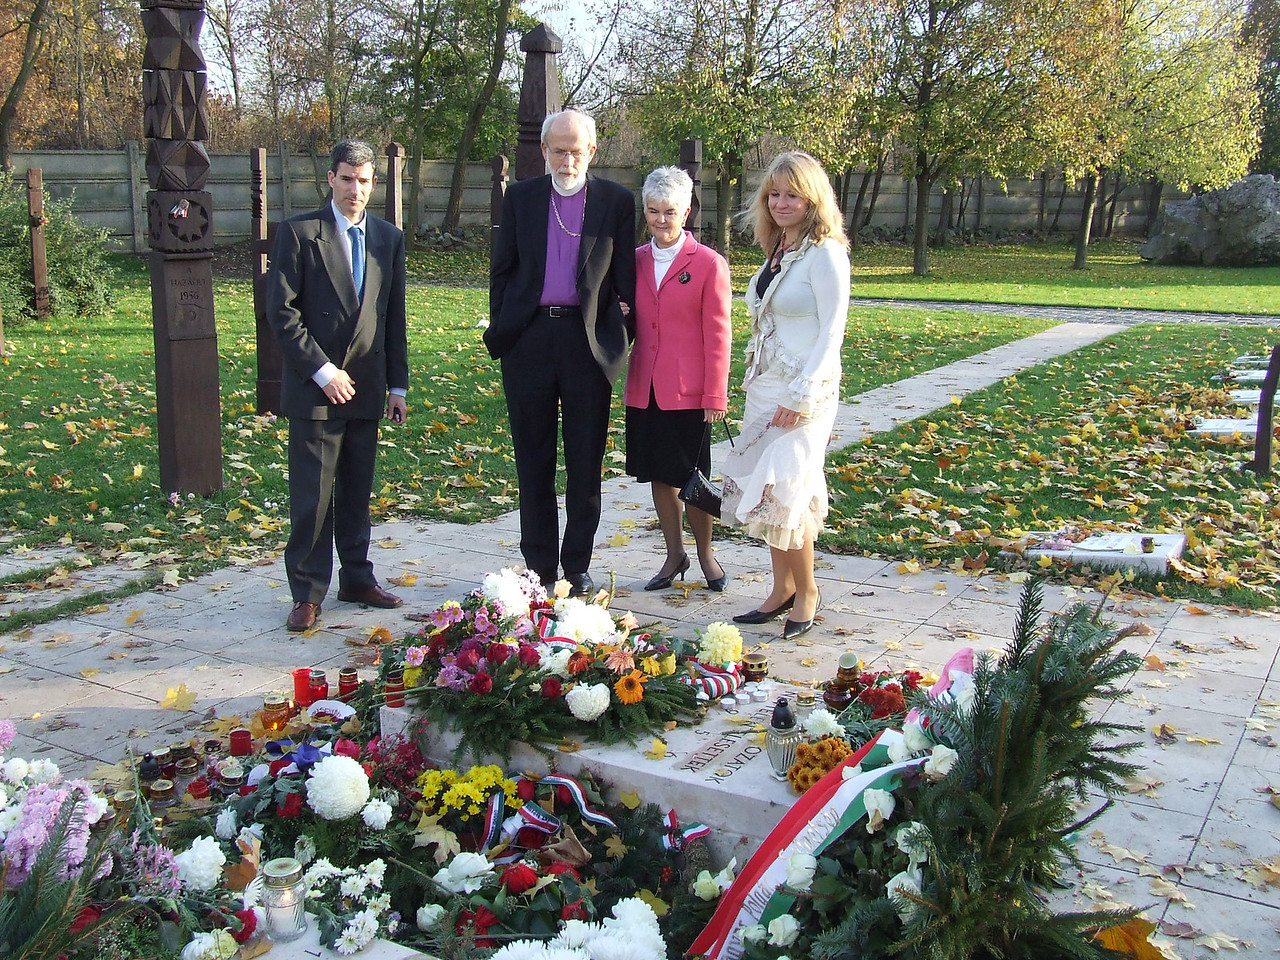 LWF President and ELCA Presiding Bishop Mark S. Hanson, second from left, and his wife, Ione, visit a cemetery in Budapest, where victims of the unsuccessful 1956 coup against the Communist regime, are buried.  With the Hansons, are from left, driver Míklos, and far right, Anna Frenyó, who has youth ministry responsibility for the Evangelical Lutheran Church in Hungary.